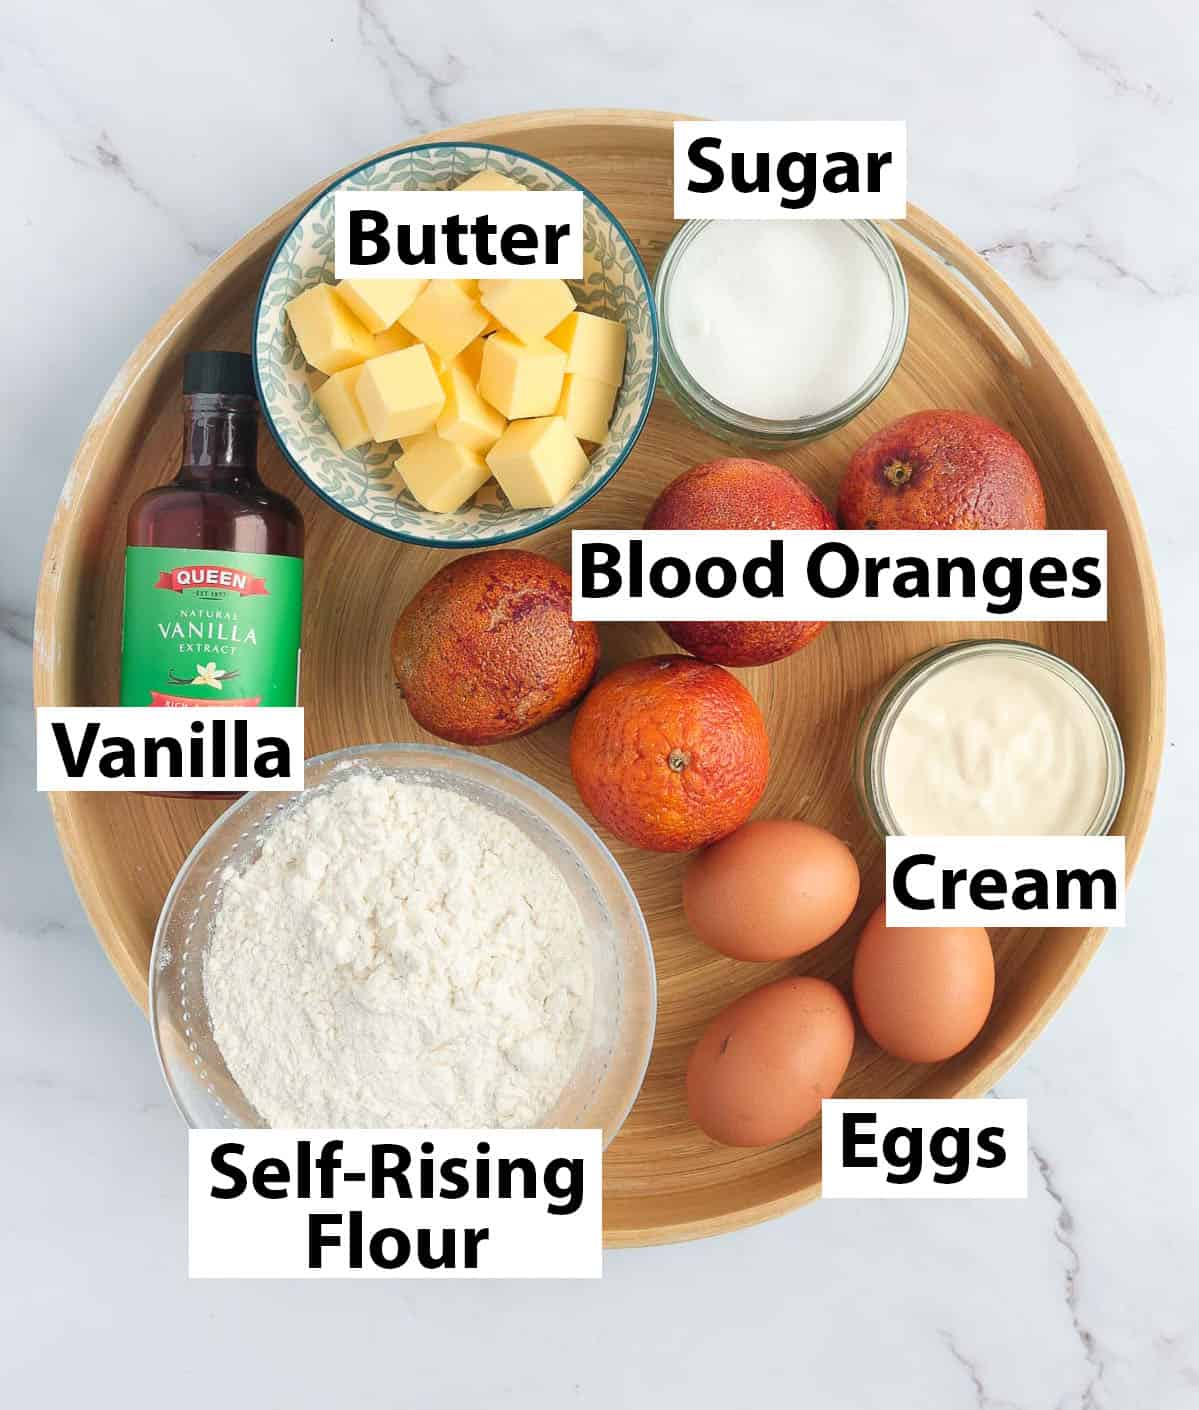 Recipe ingredients in a round wooden tray.